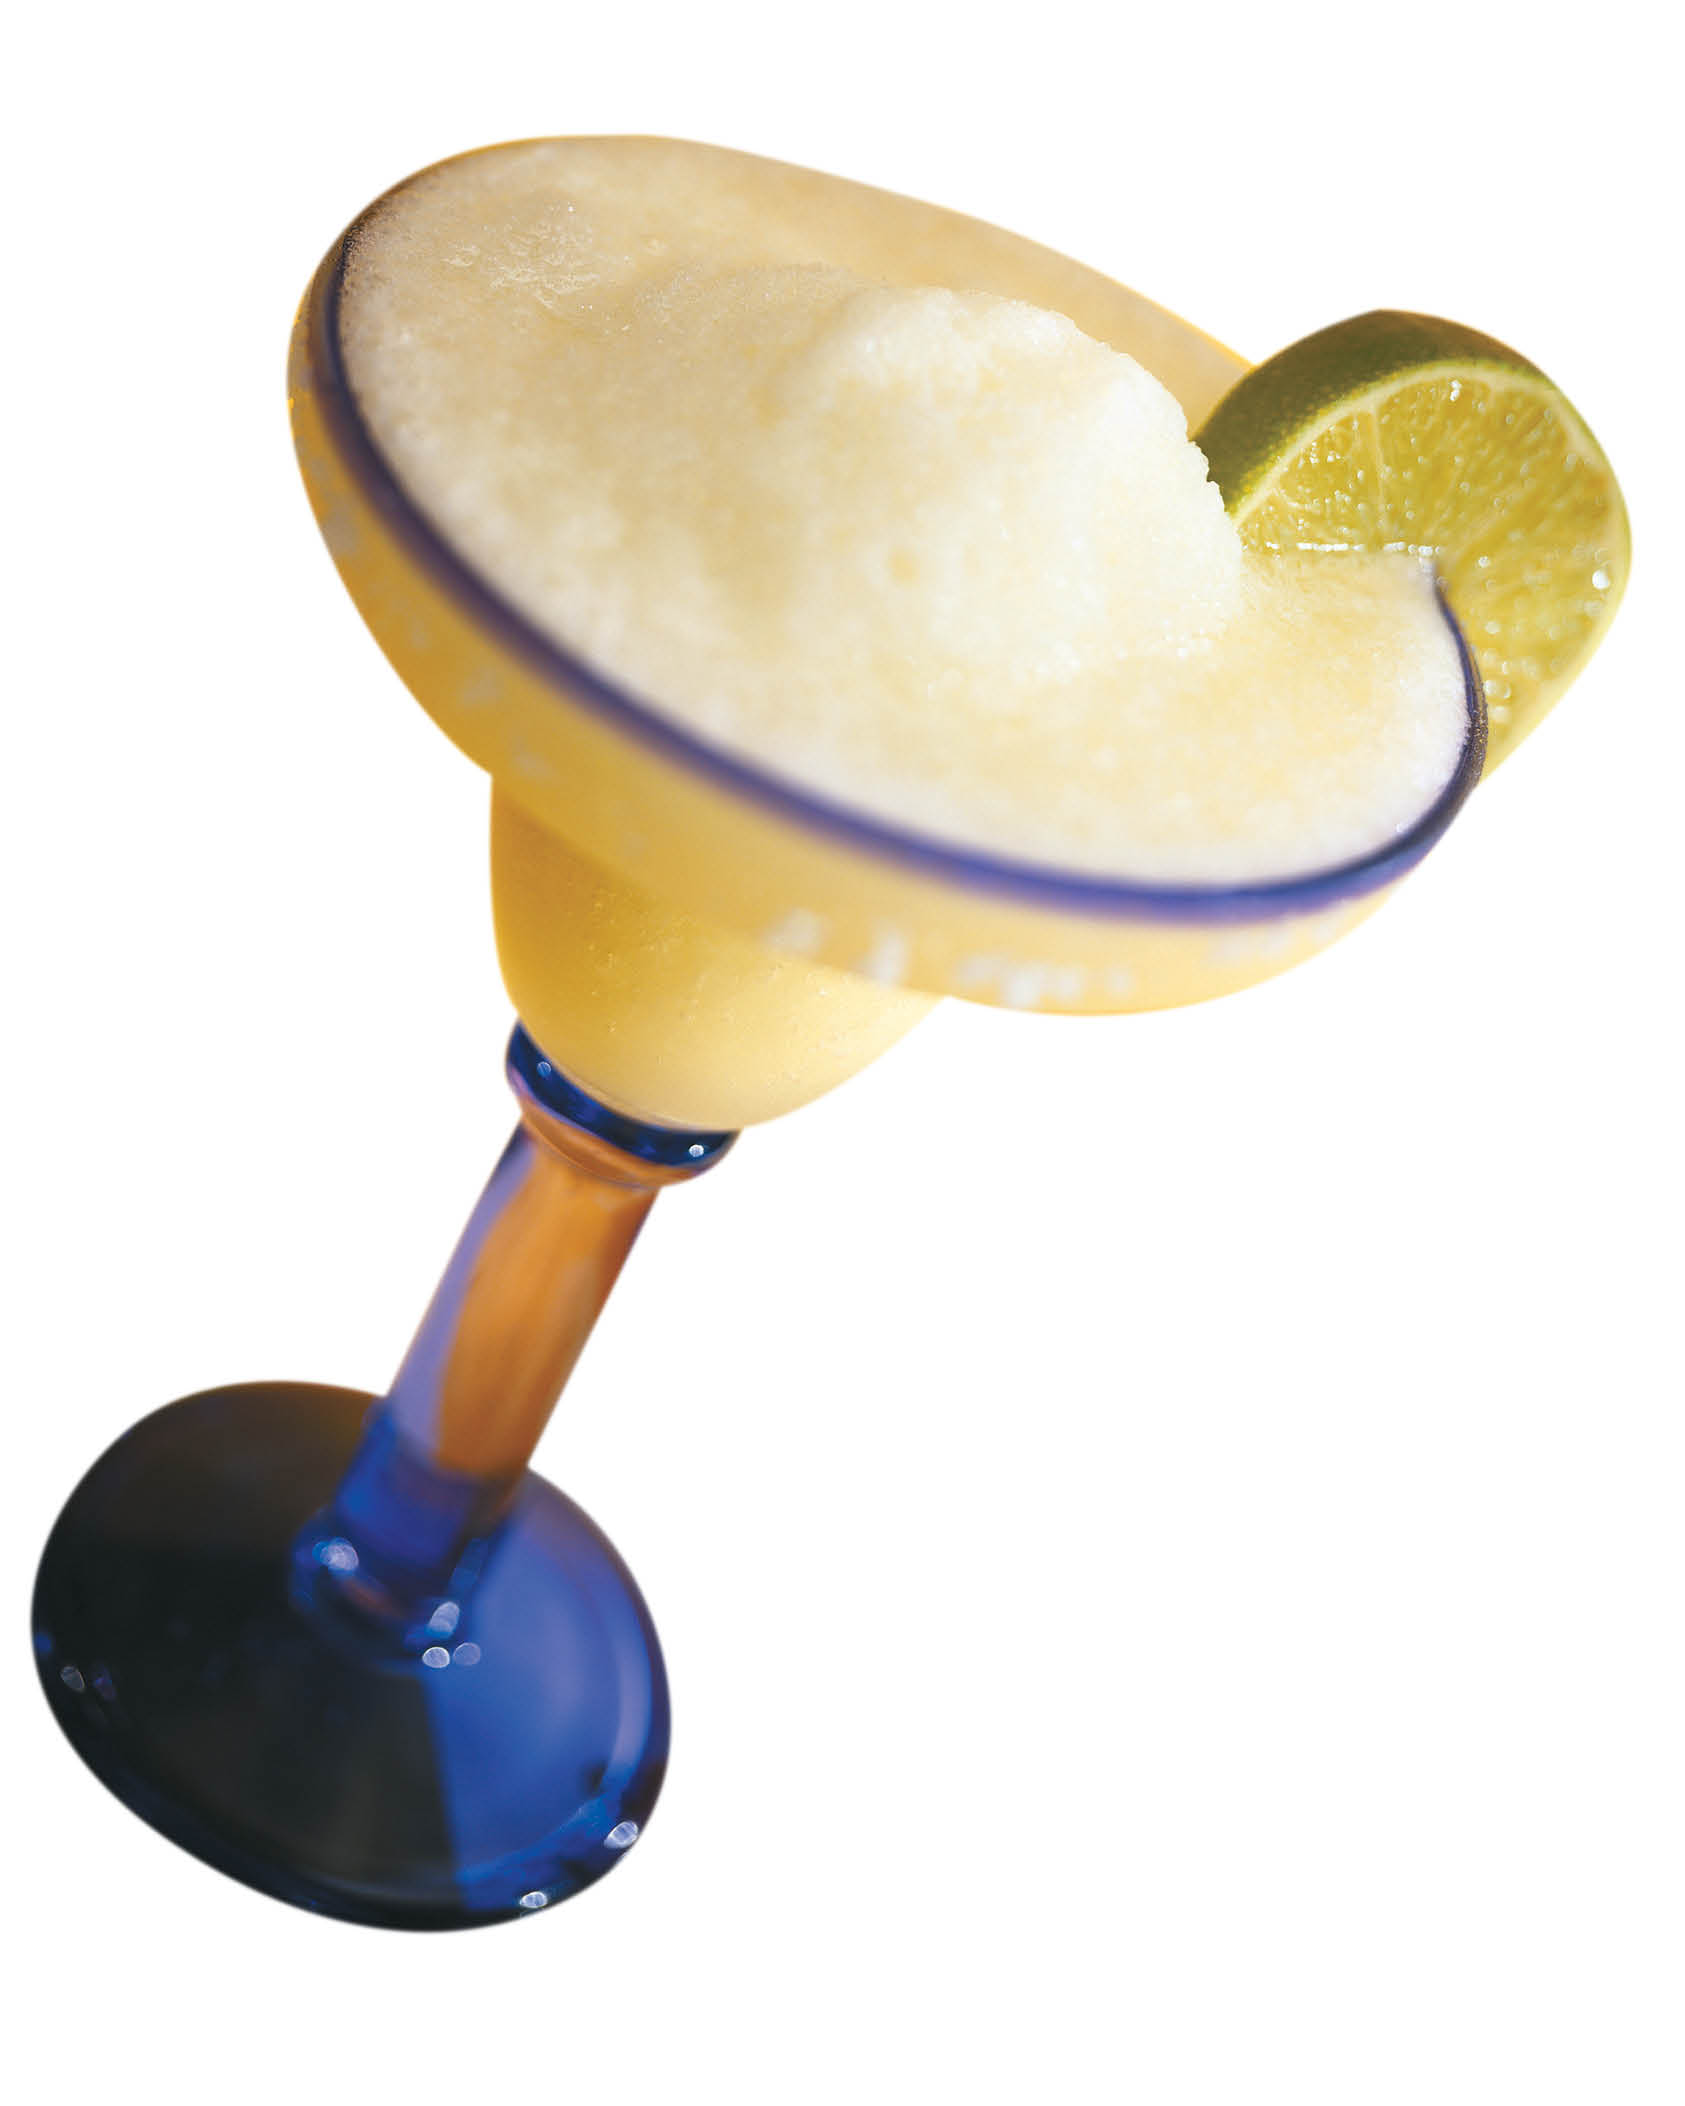 Deliciously refreshing with any meal -a Tequila beverage